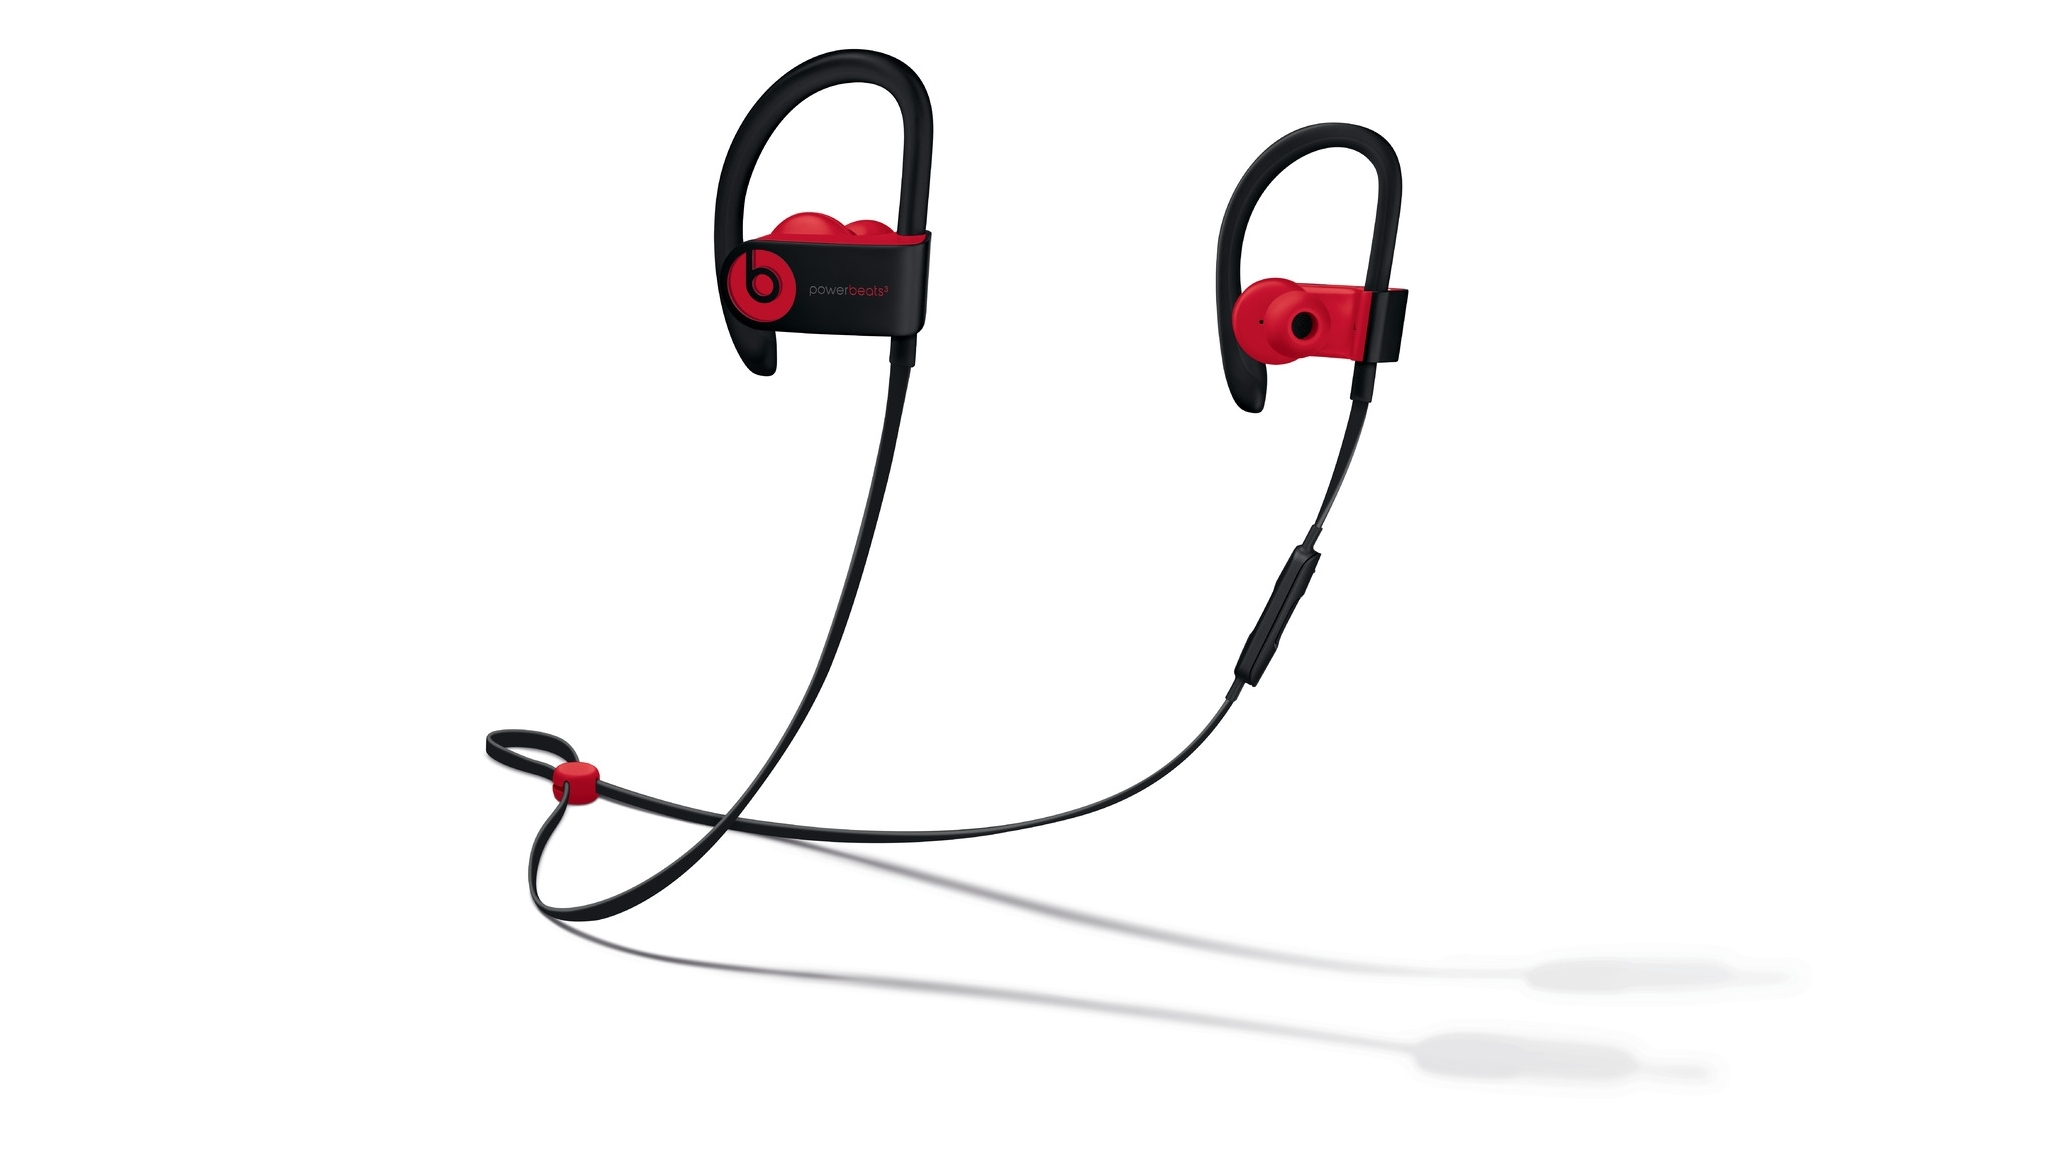 602dd07d4a2 Buy Beats Powerbeats3 Wireless In-Ear Headphones - Decade Collection |  Harvey Norman AU